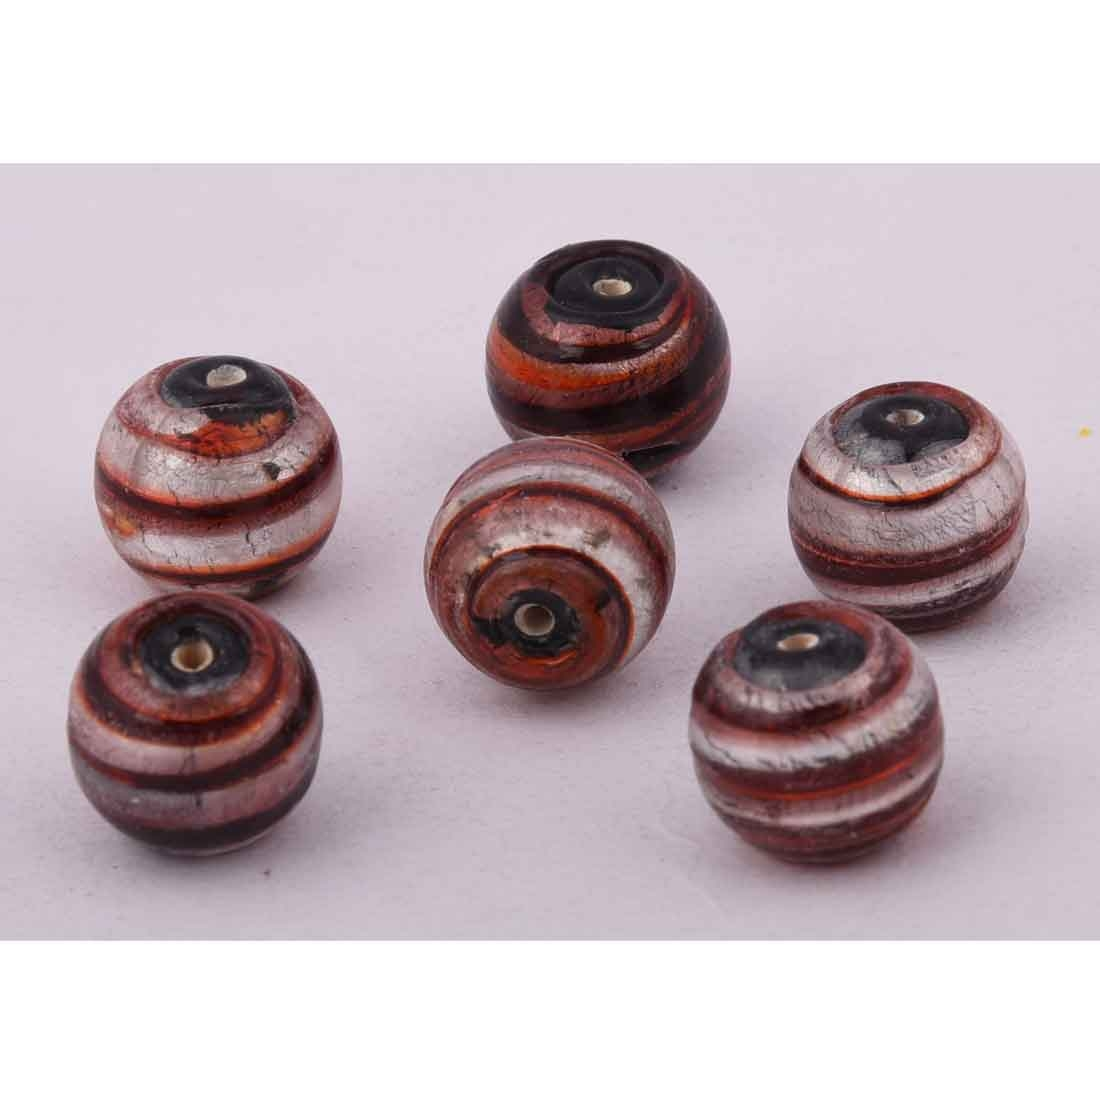 Beads India 1700080 Lampwork Handcrafted Glass Beads/Discounts Above 500 pcs